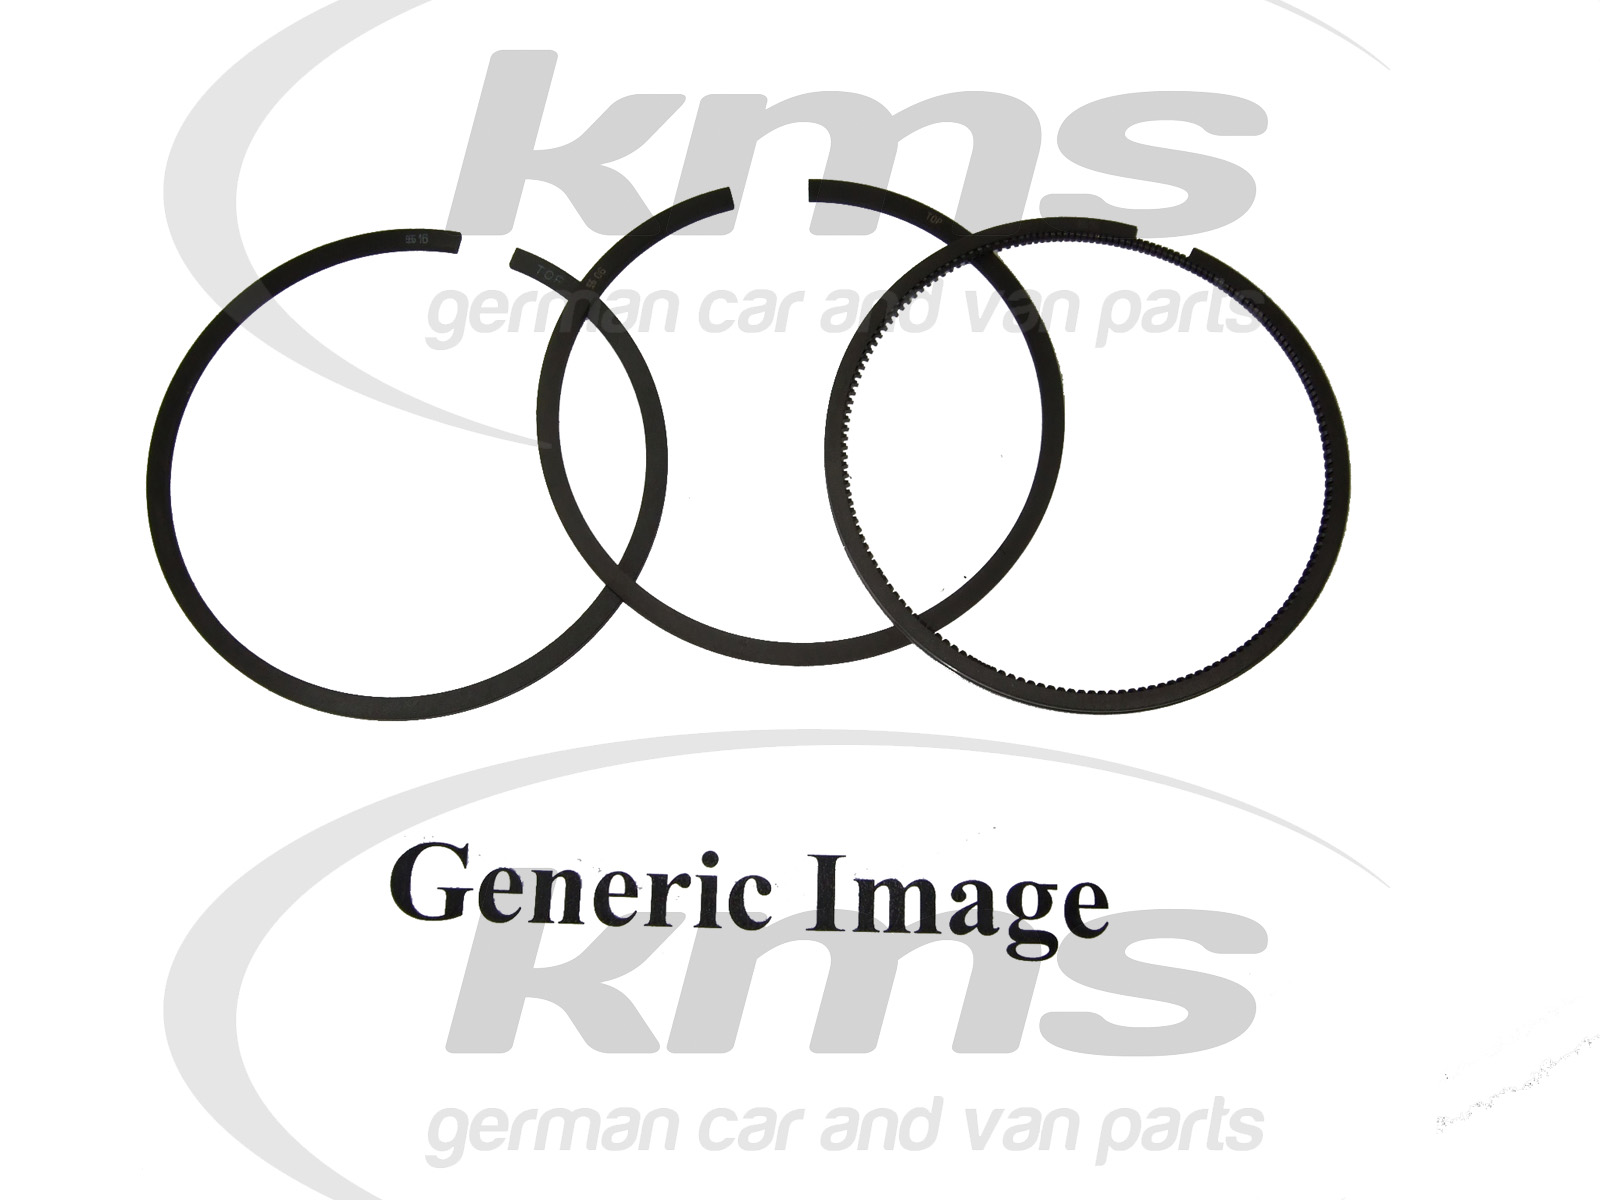 Piston Ring 83 98mm Std E30 E36 316i 318i 325i M40 M20 87